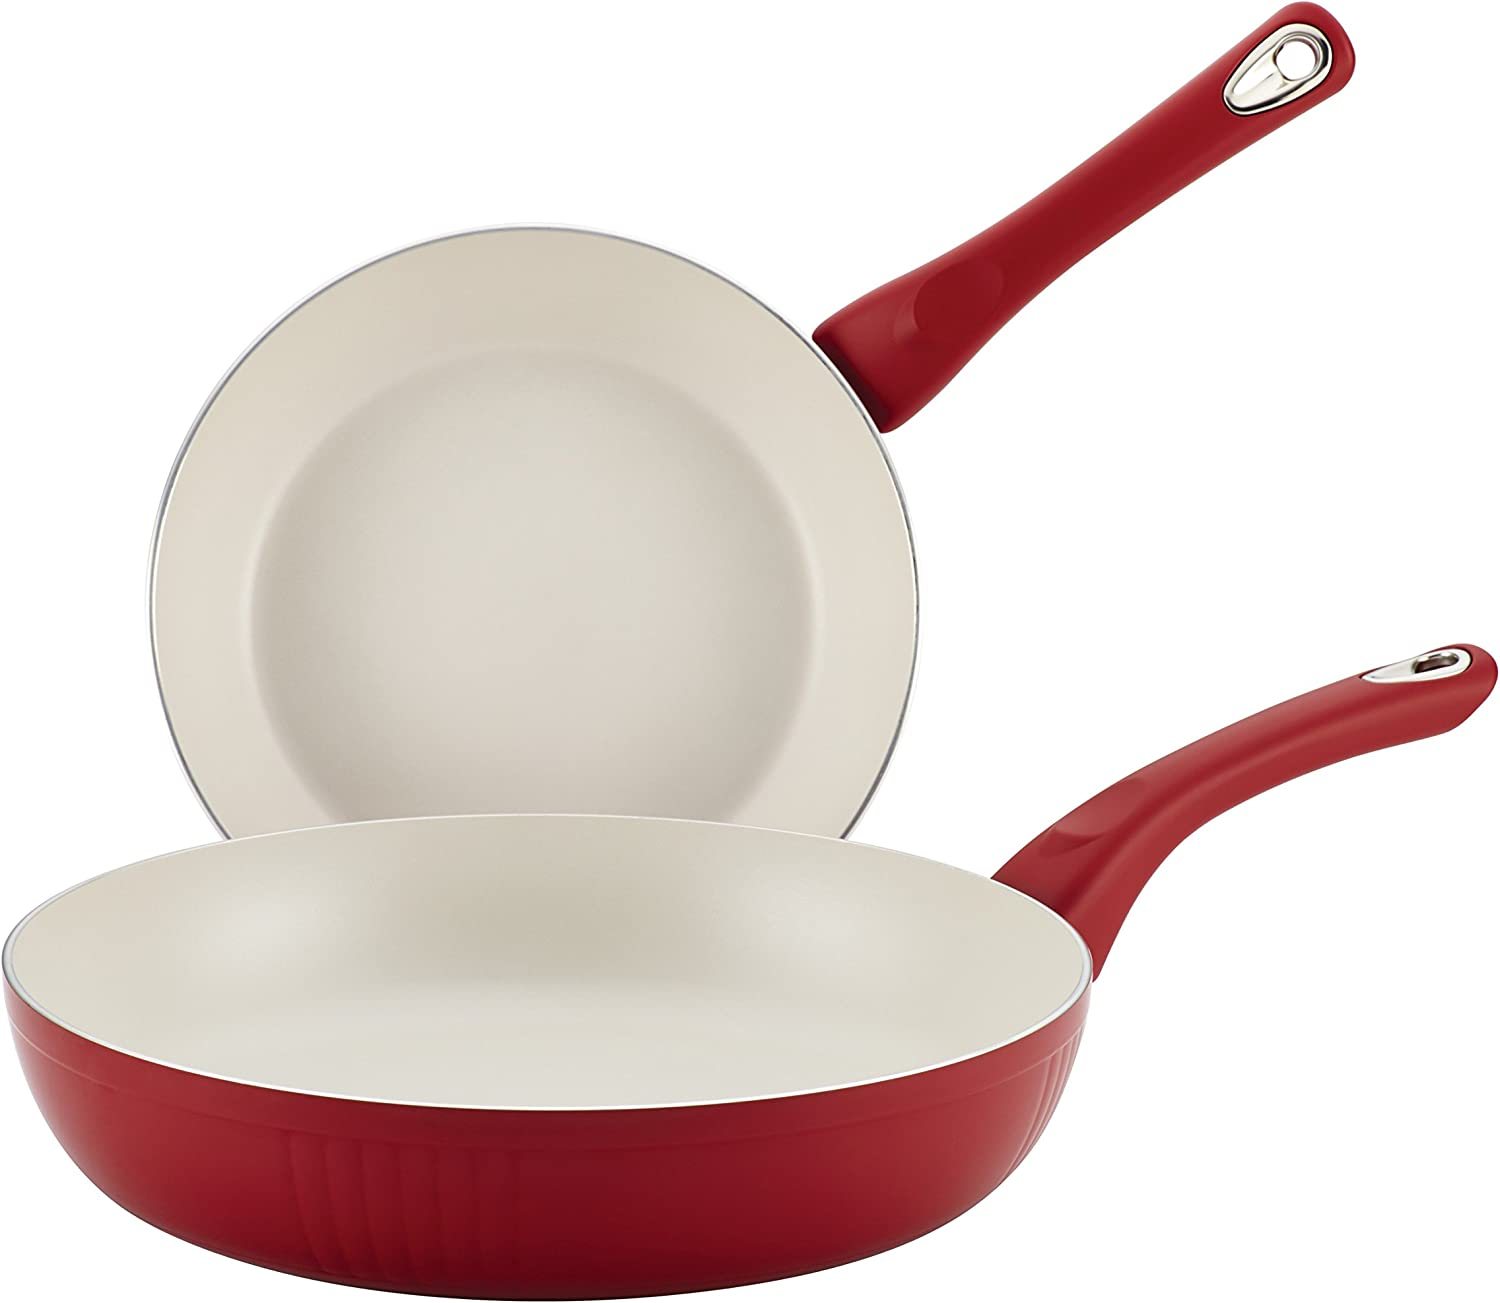 Farberware New Traditions Nonstick Frying Pan Set / Fry Pan Set / Skillet Set - 8 Inch and 10 Inch, Red